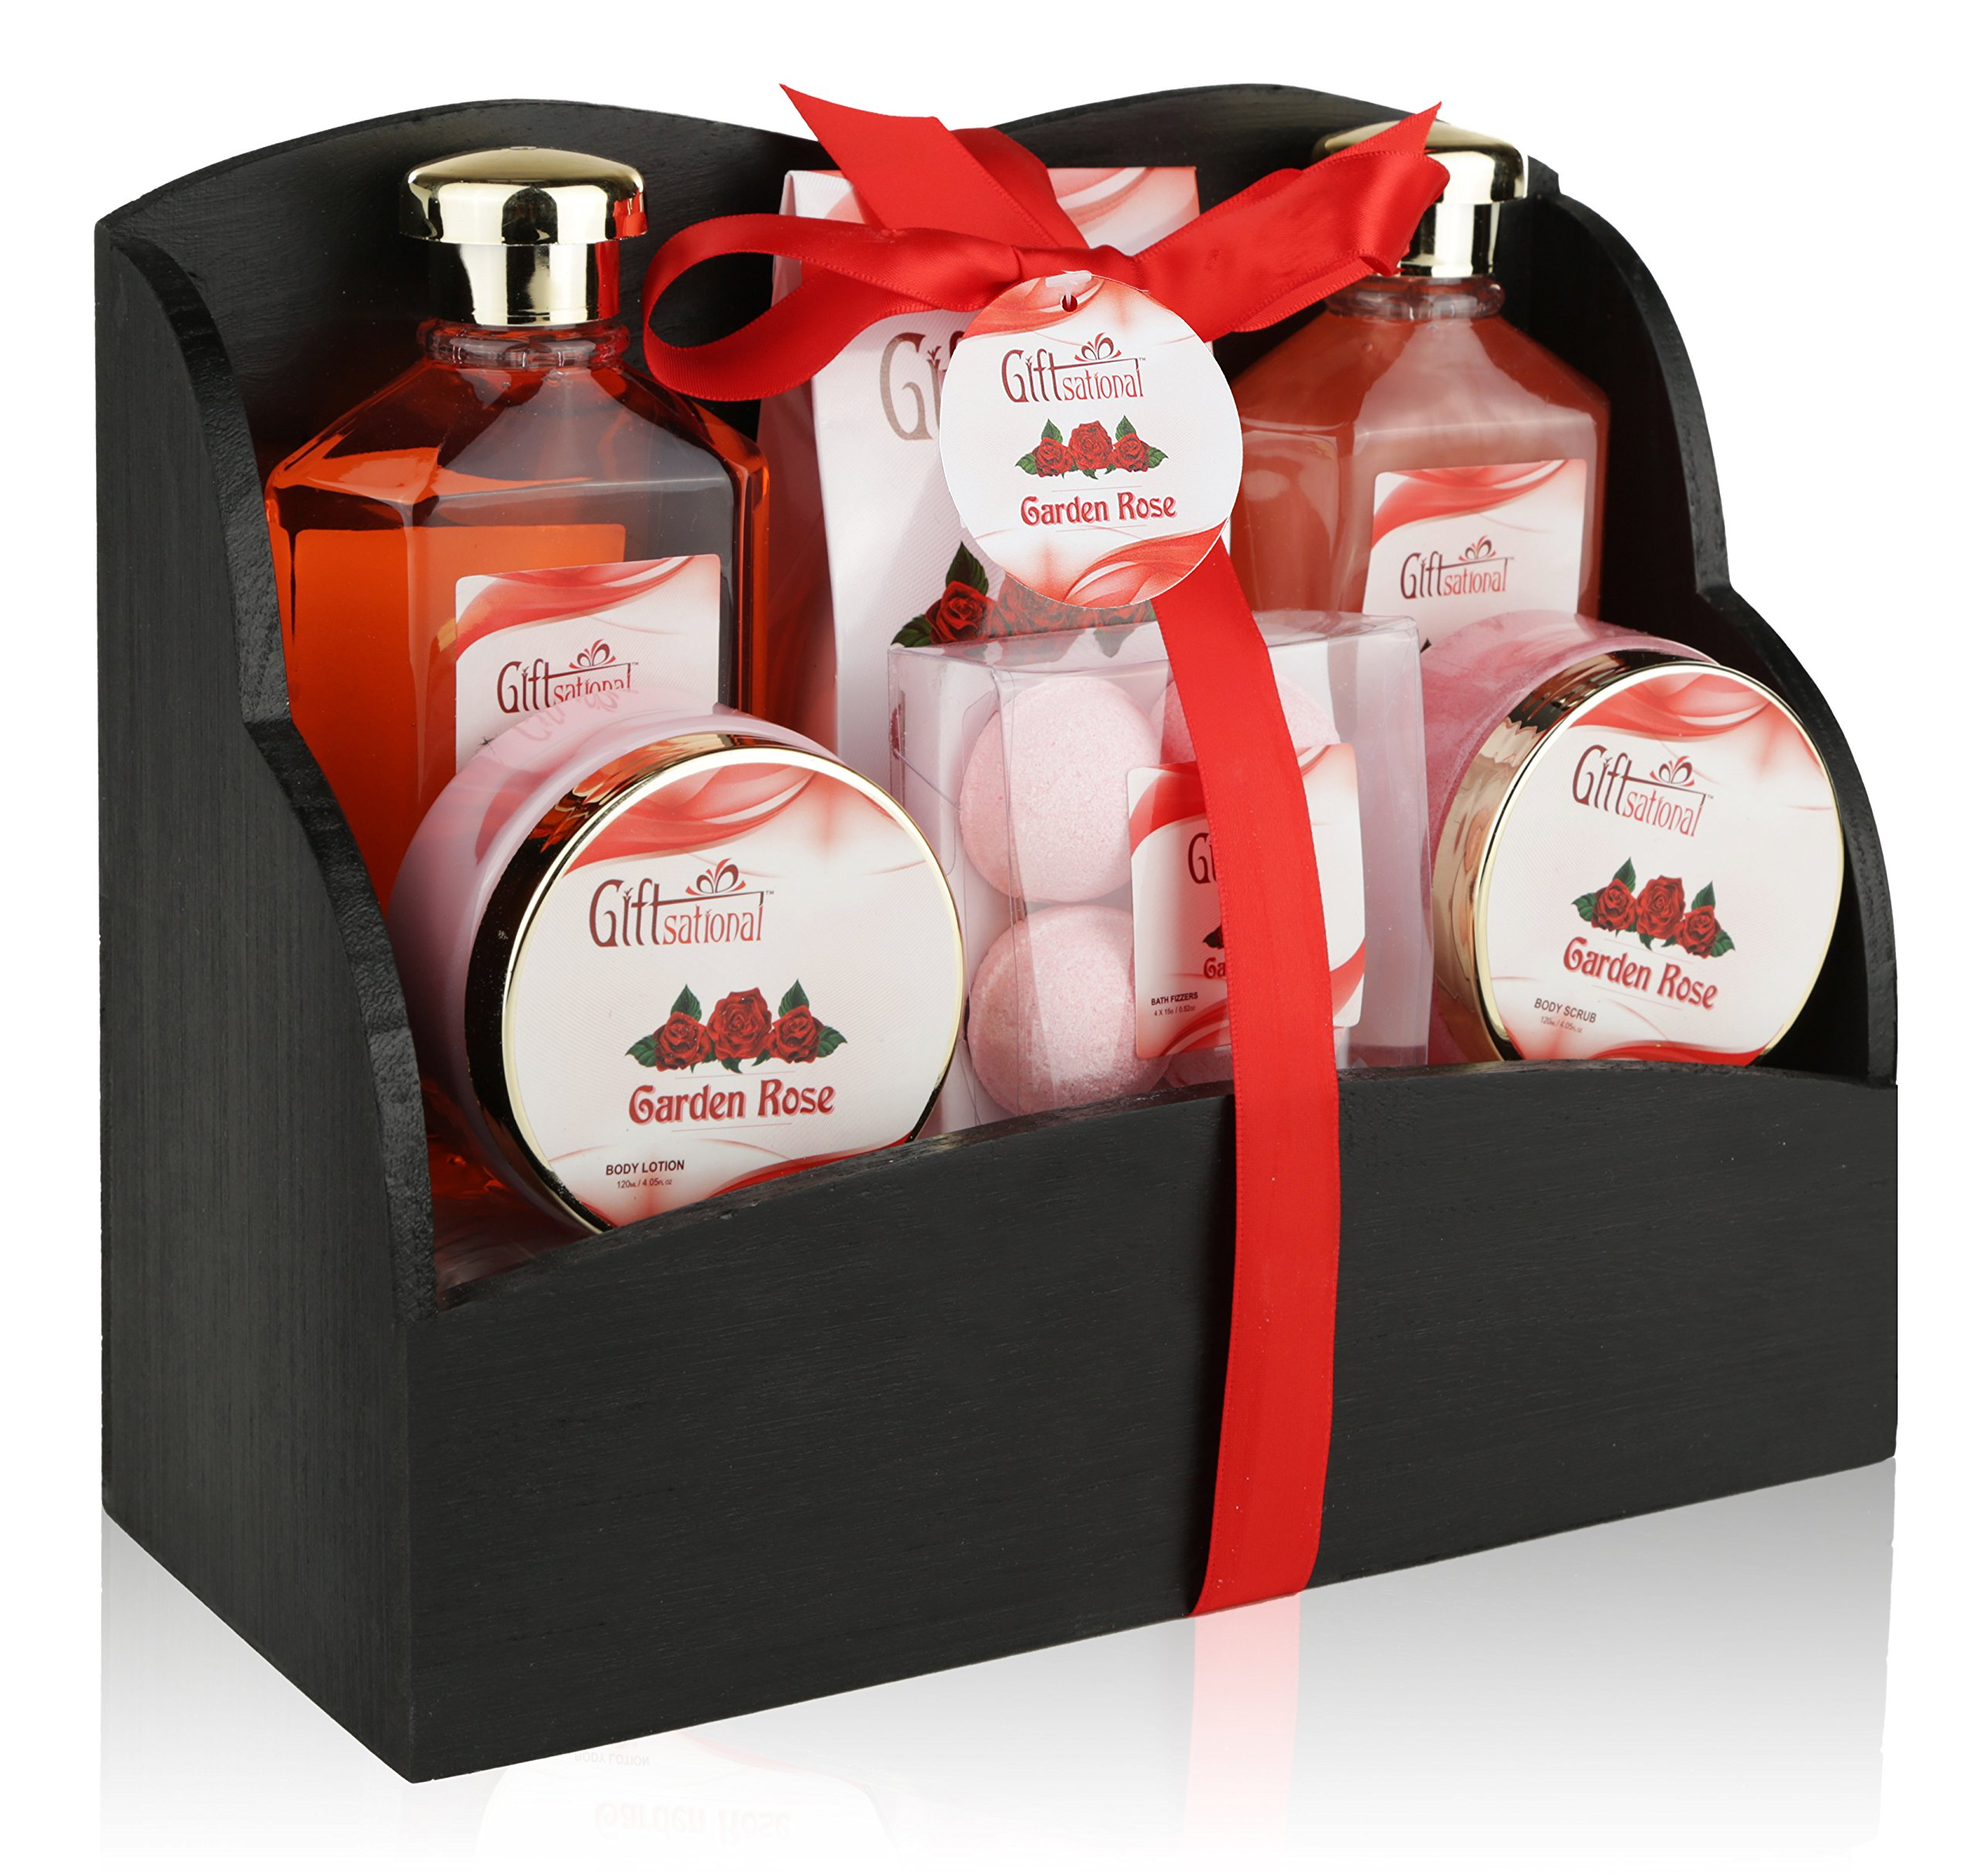 dc3955eaa25 Amazon.com   Spa Gift Basket with Heavenly Garden Rose fragrance ...